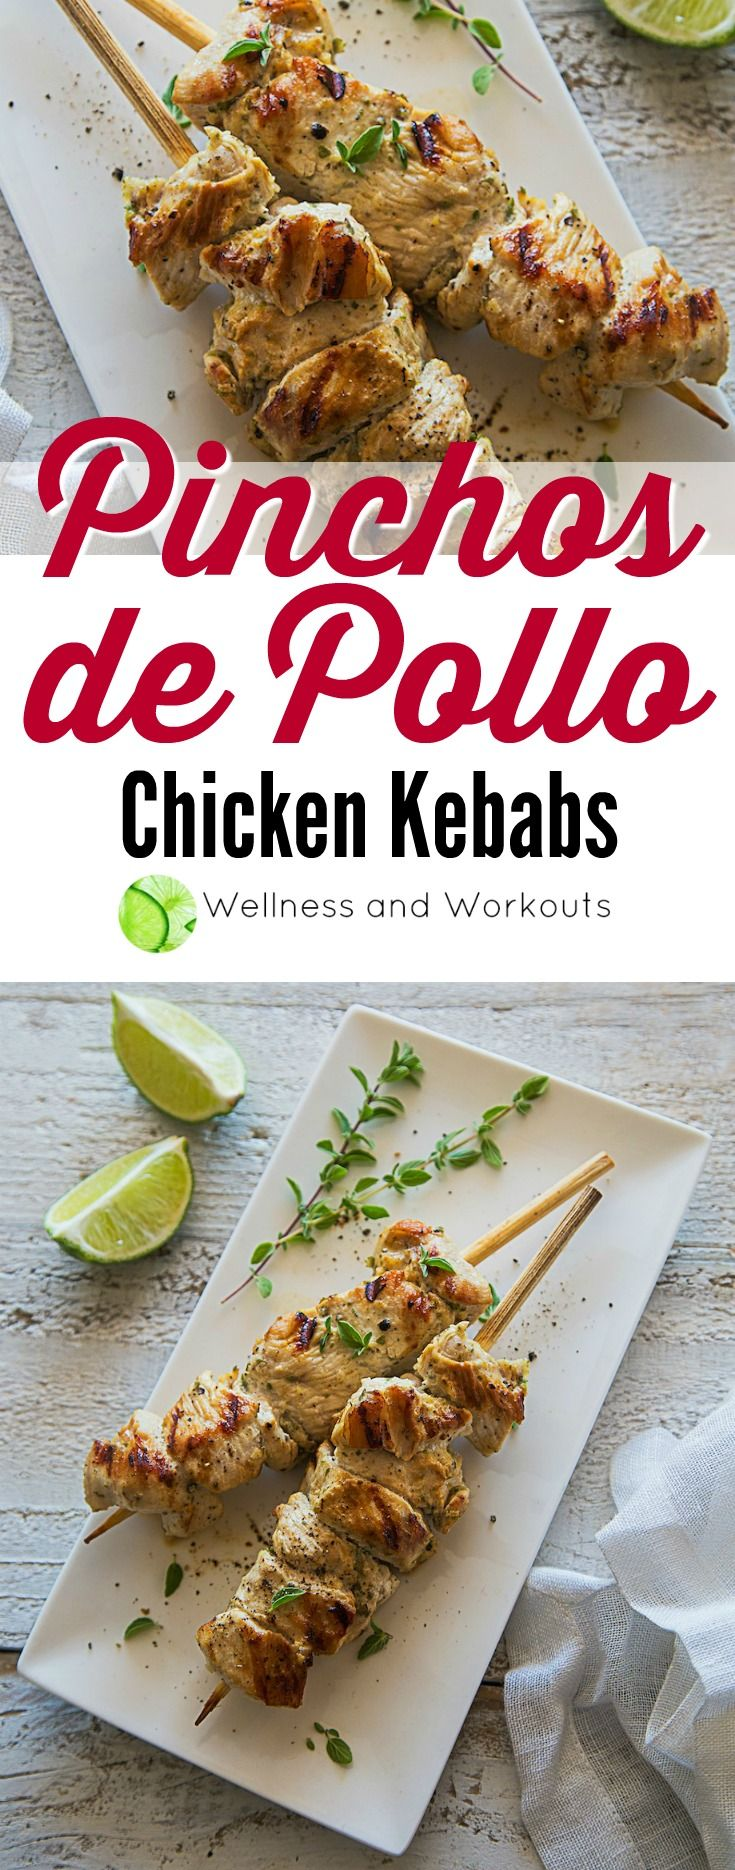 This Pinchos de Pollo recipe is great for a dairy-free, keto-paleo/low-carb menu. It also offers an AIP (Autoimmune Paleo) option!